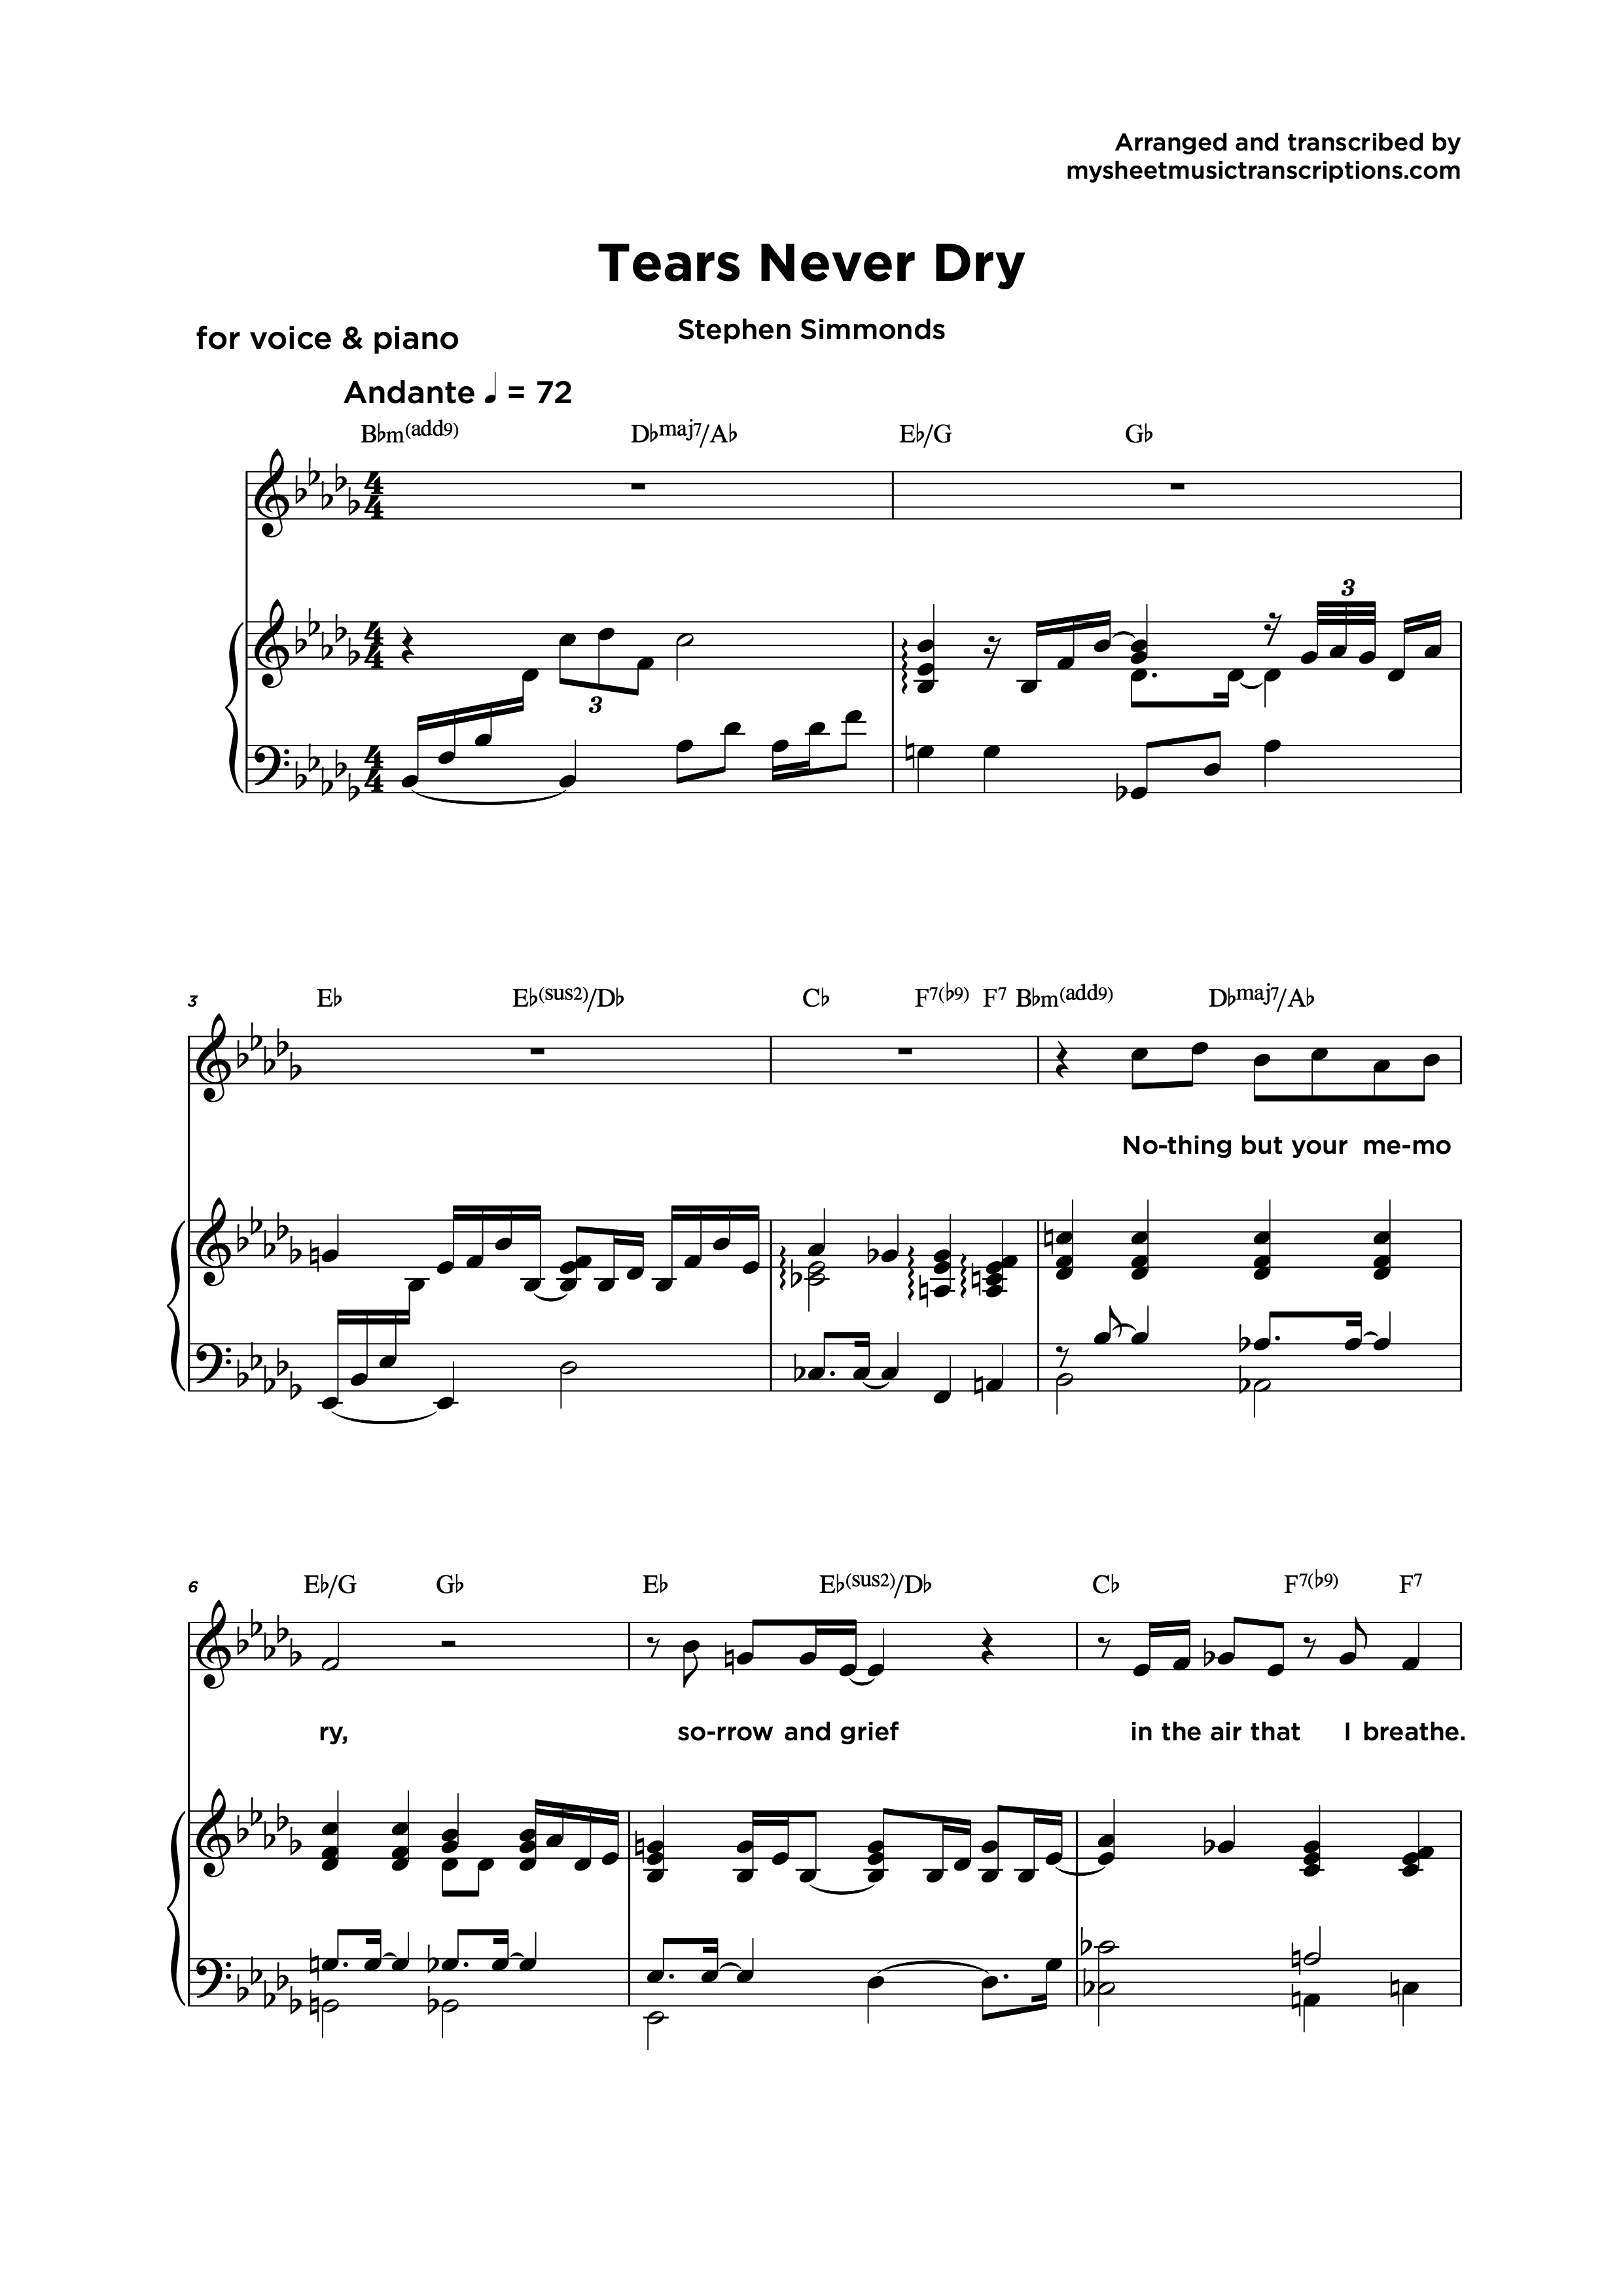 Tears Never Dry - Partitura para piano y vocal